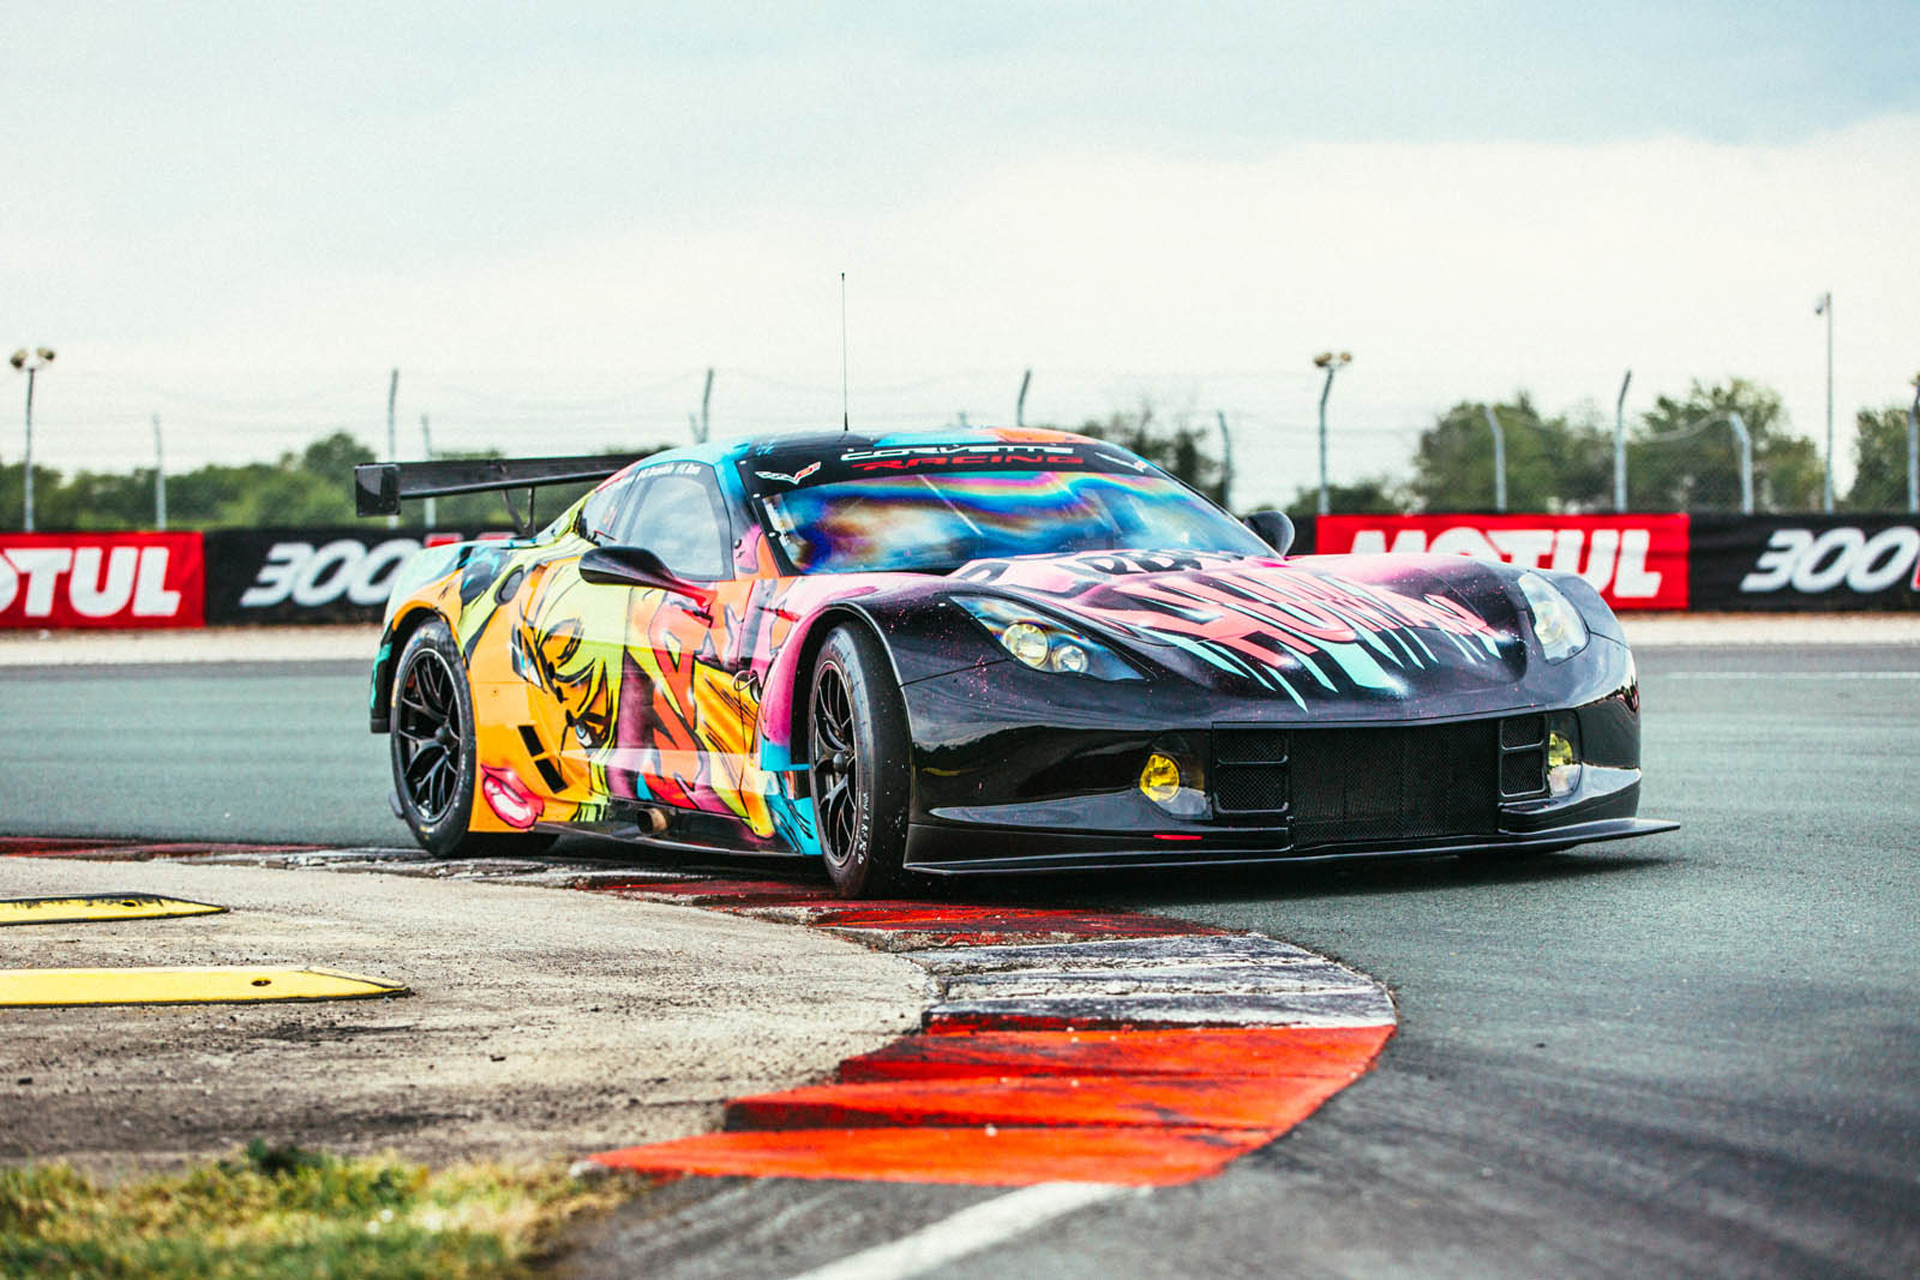 Attirant French Team To Race Wild Corvette C7.R Art Car In 24 Hours Of Le Mans